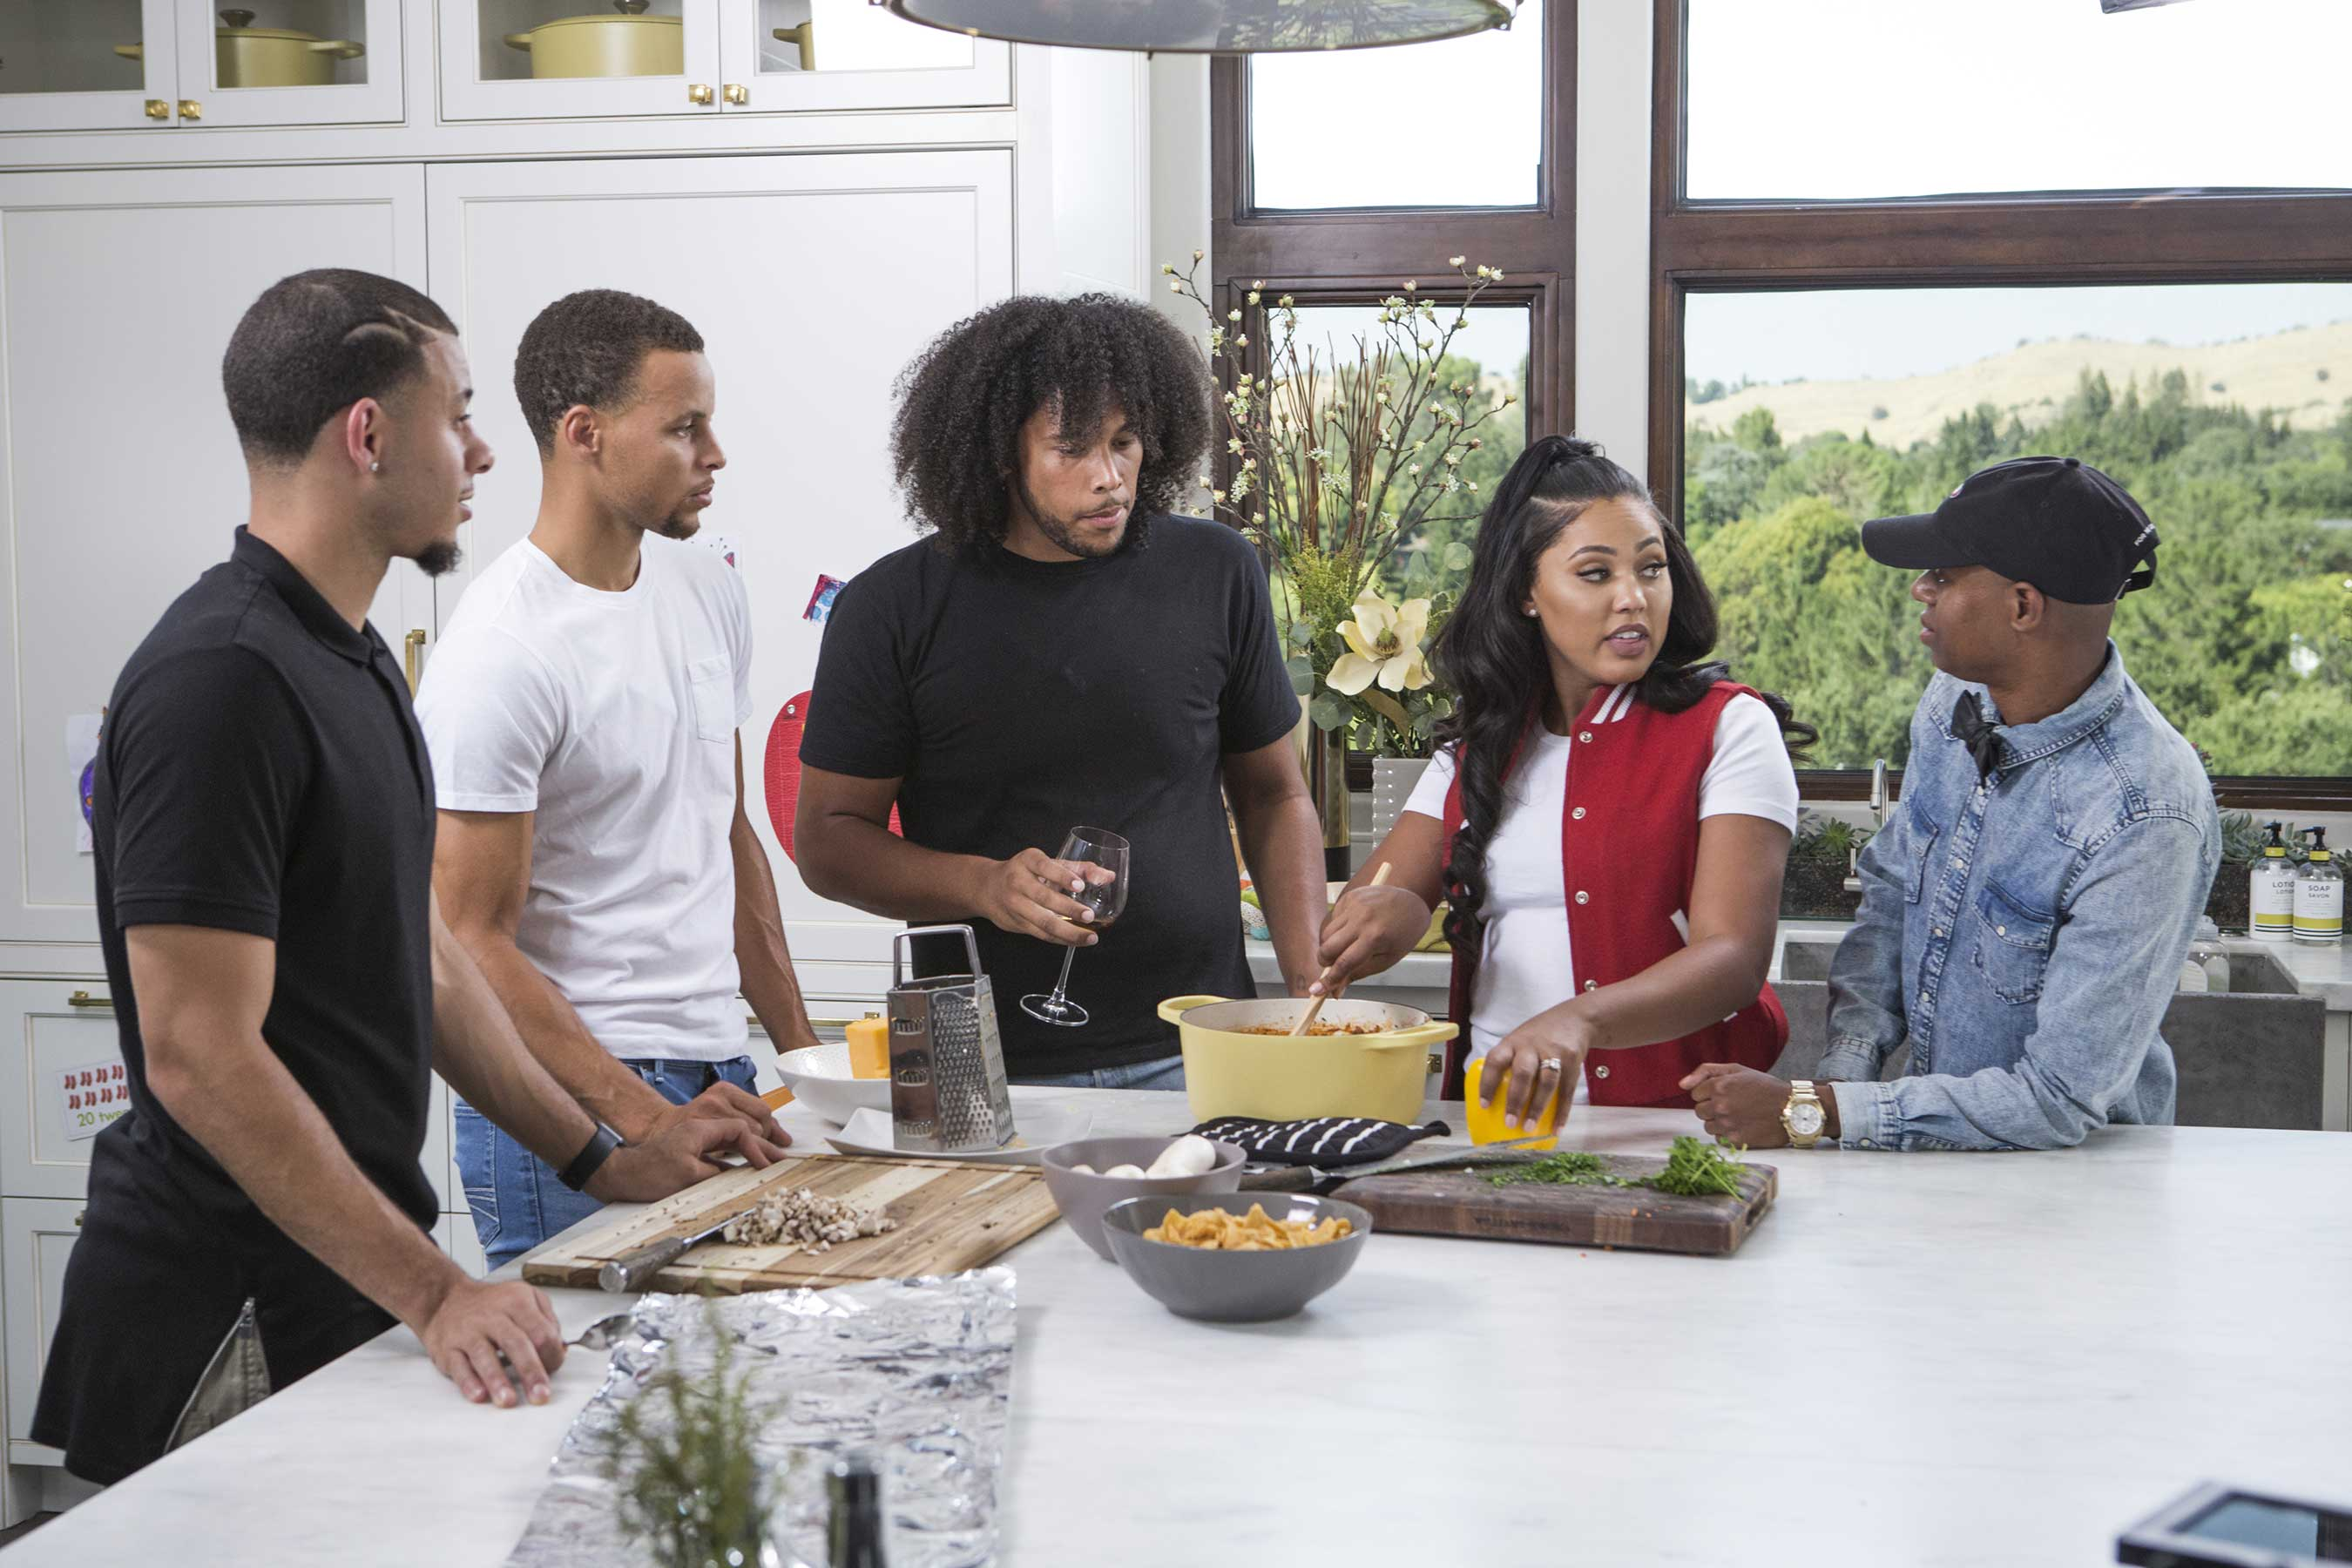 ayesha curry celebrates family  friends and food in new